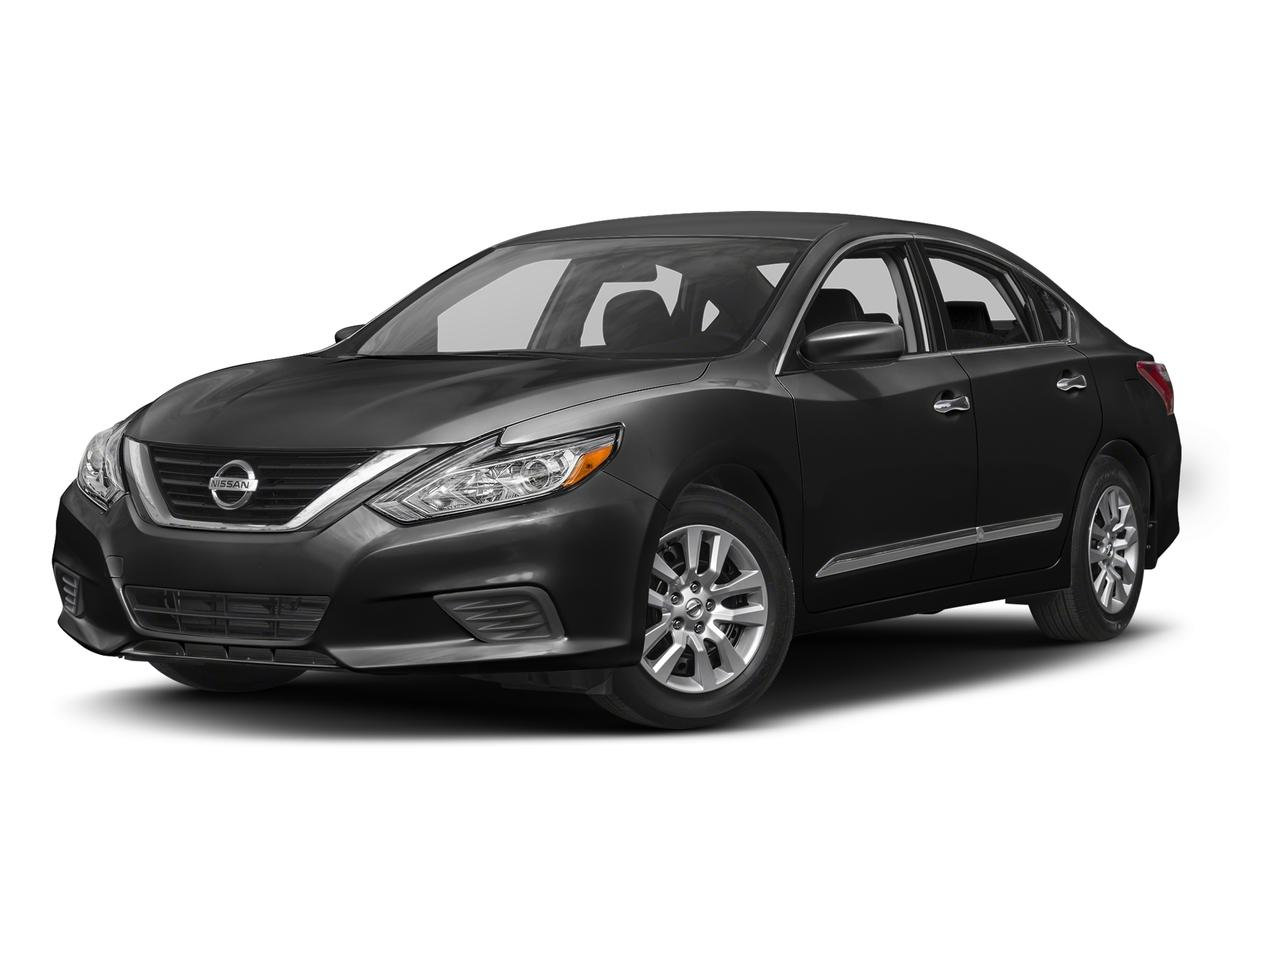 2017 Nissan Altima Vehicle Photo in Oklahoma City, OK 73114